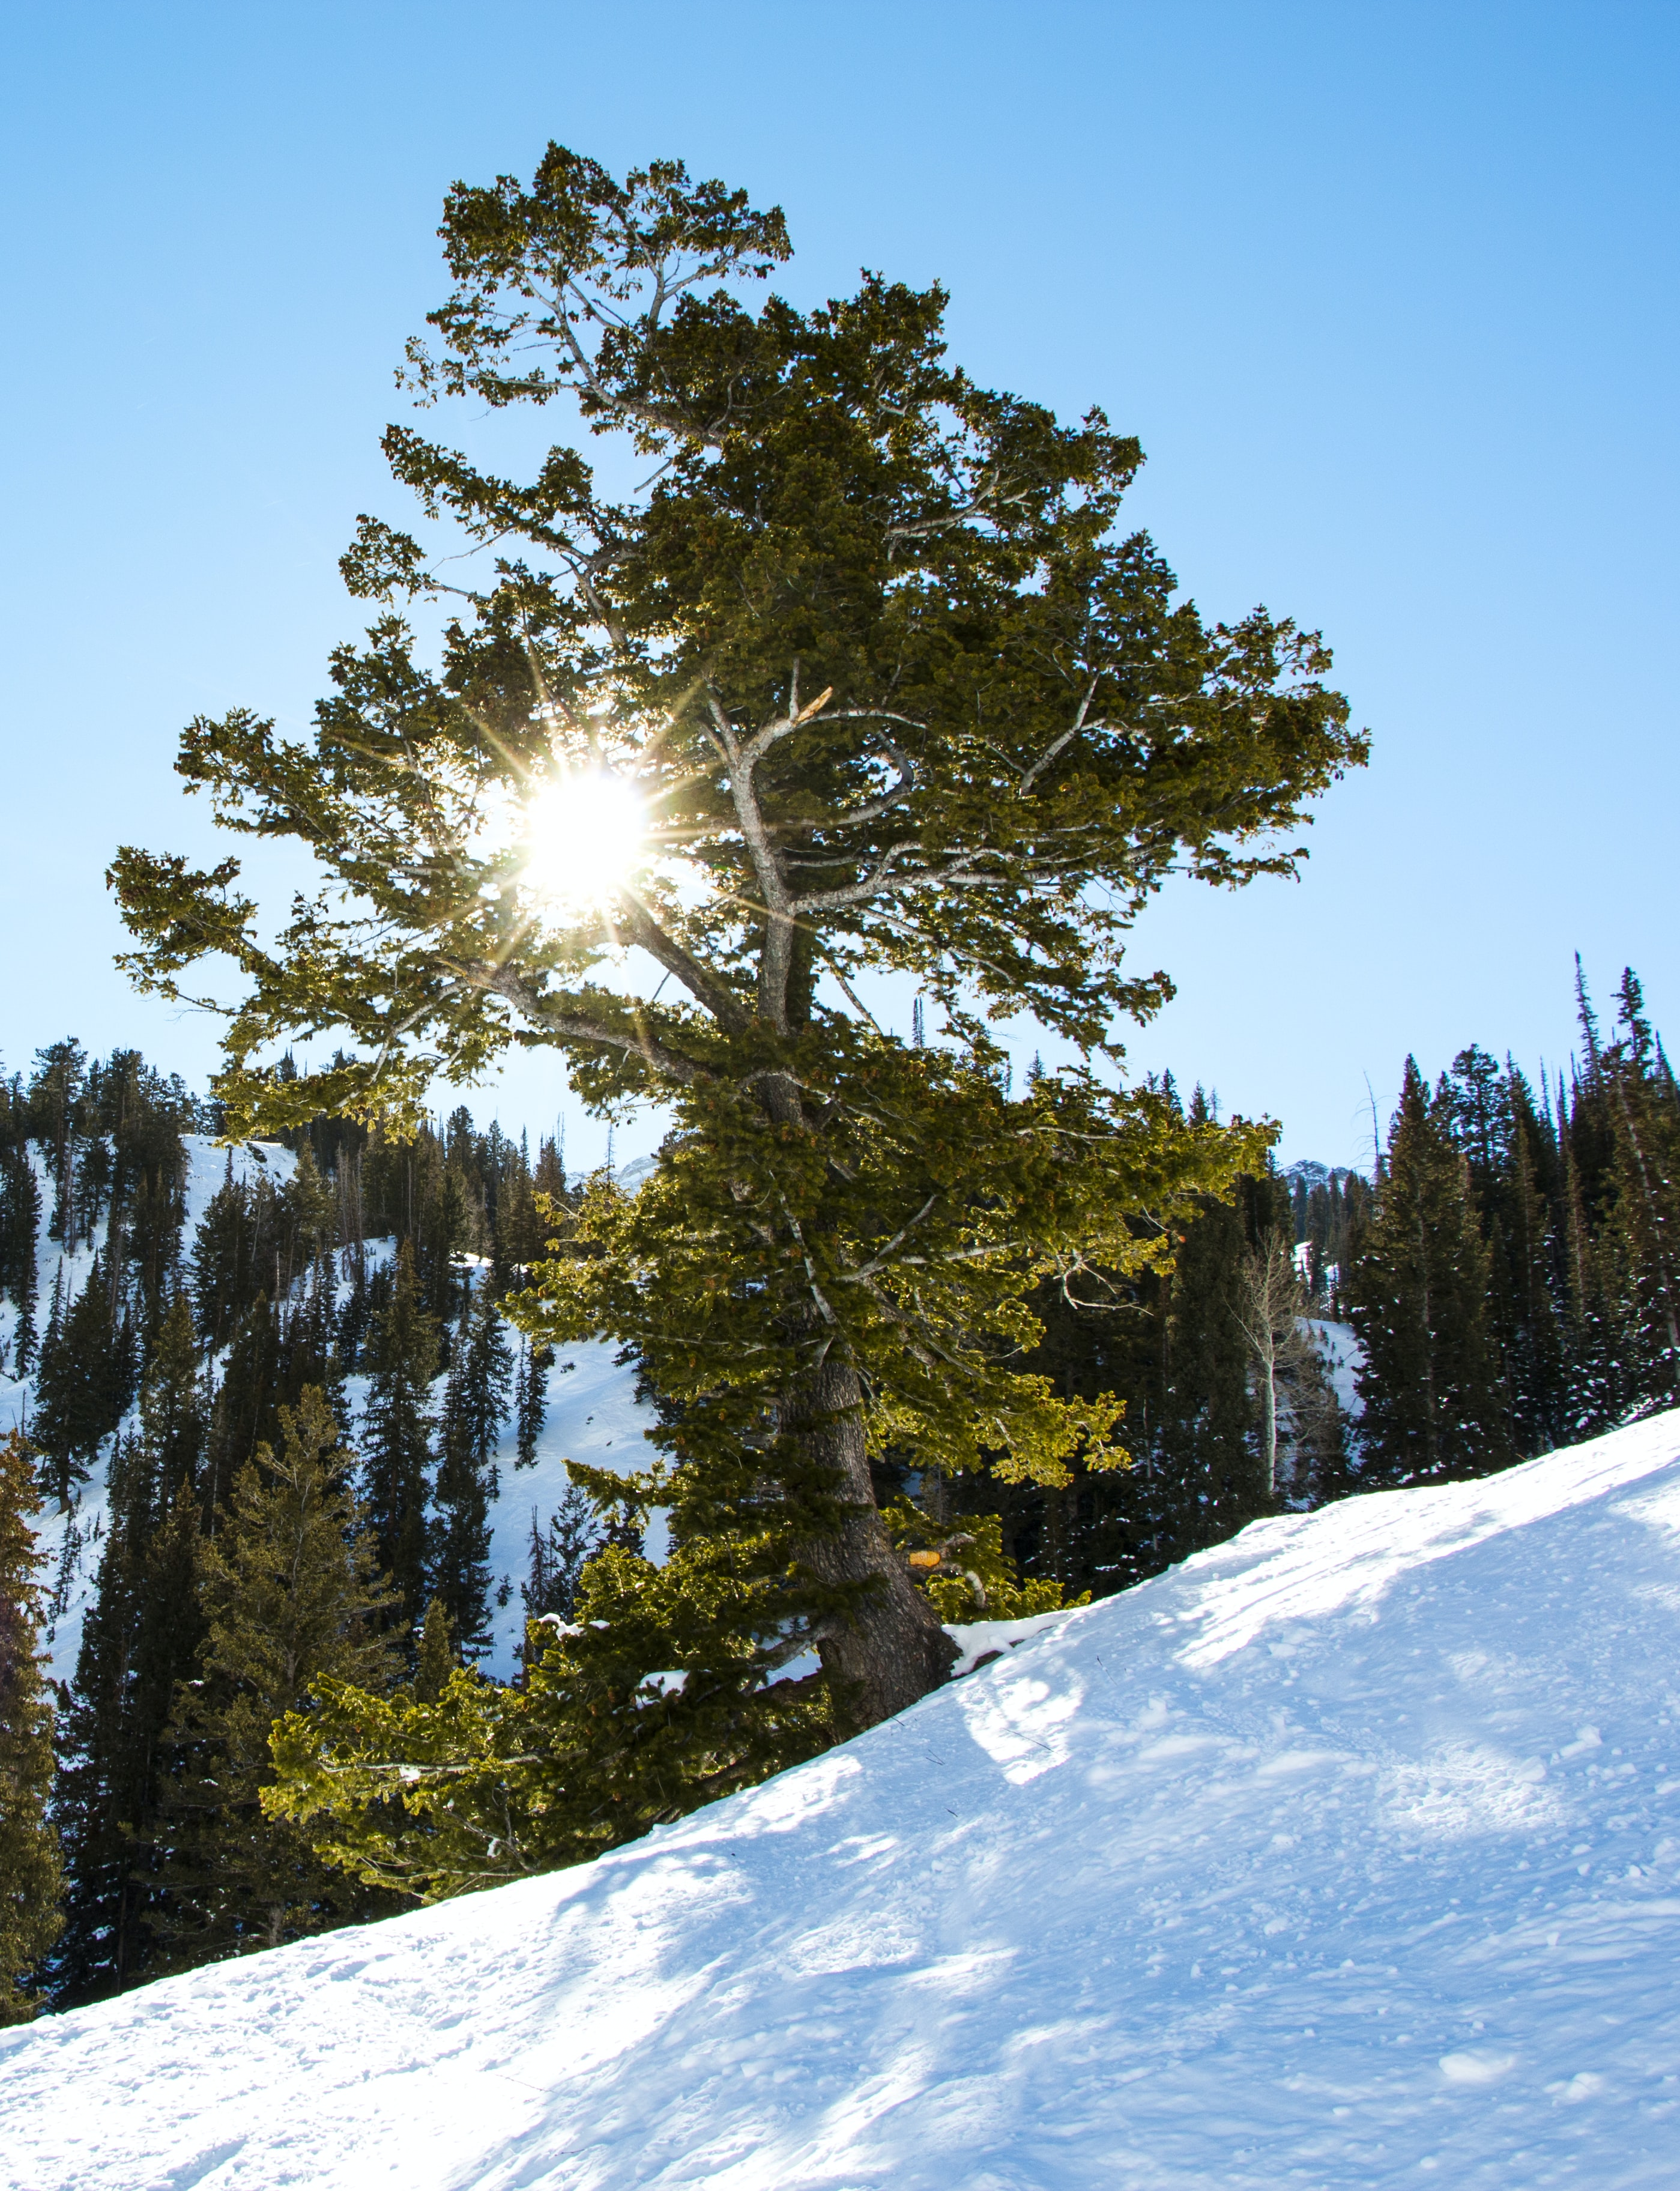 A bright snow landscape of a trees illuminated by the sun